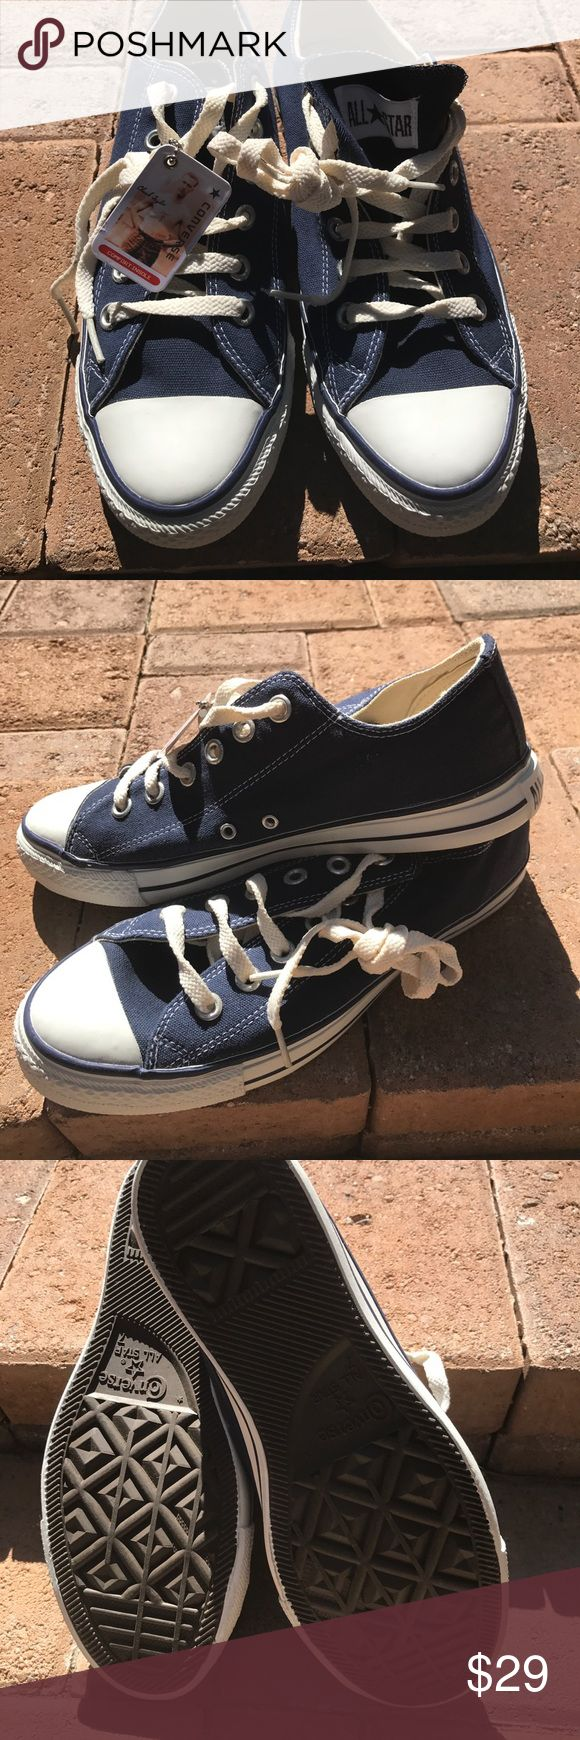 Converse All Star Oxford Chuck Taylor Men's 11 Authentic Converse All Star Oxford Chuck Taylor Navy Men's  US 11, BRAND NEW With Box. Price Firm, No offers Converse Shoes Oxfords & Derbys